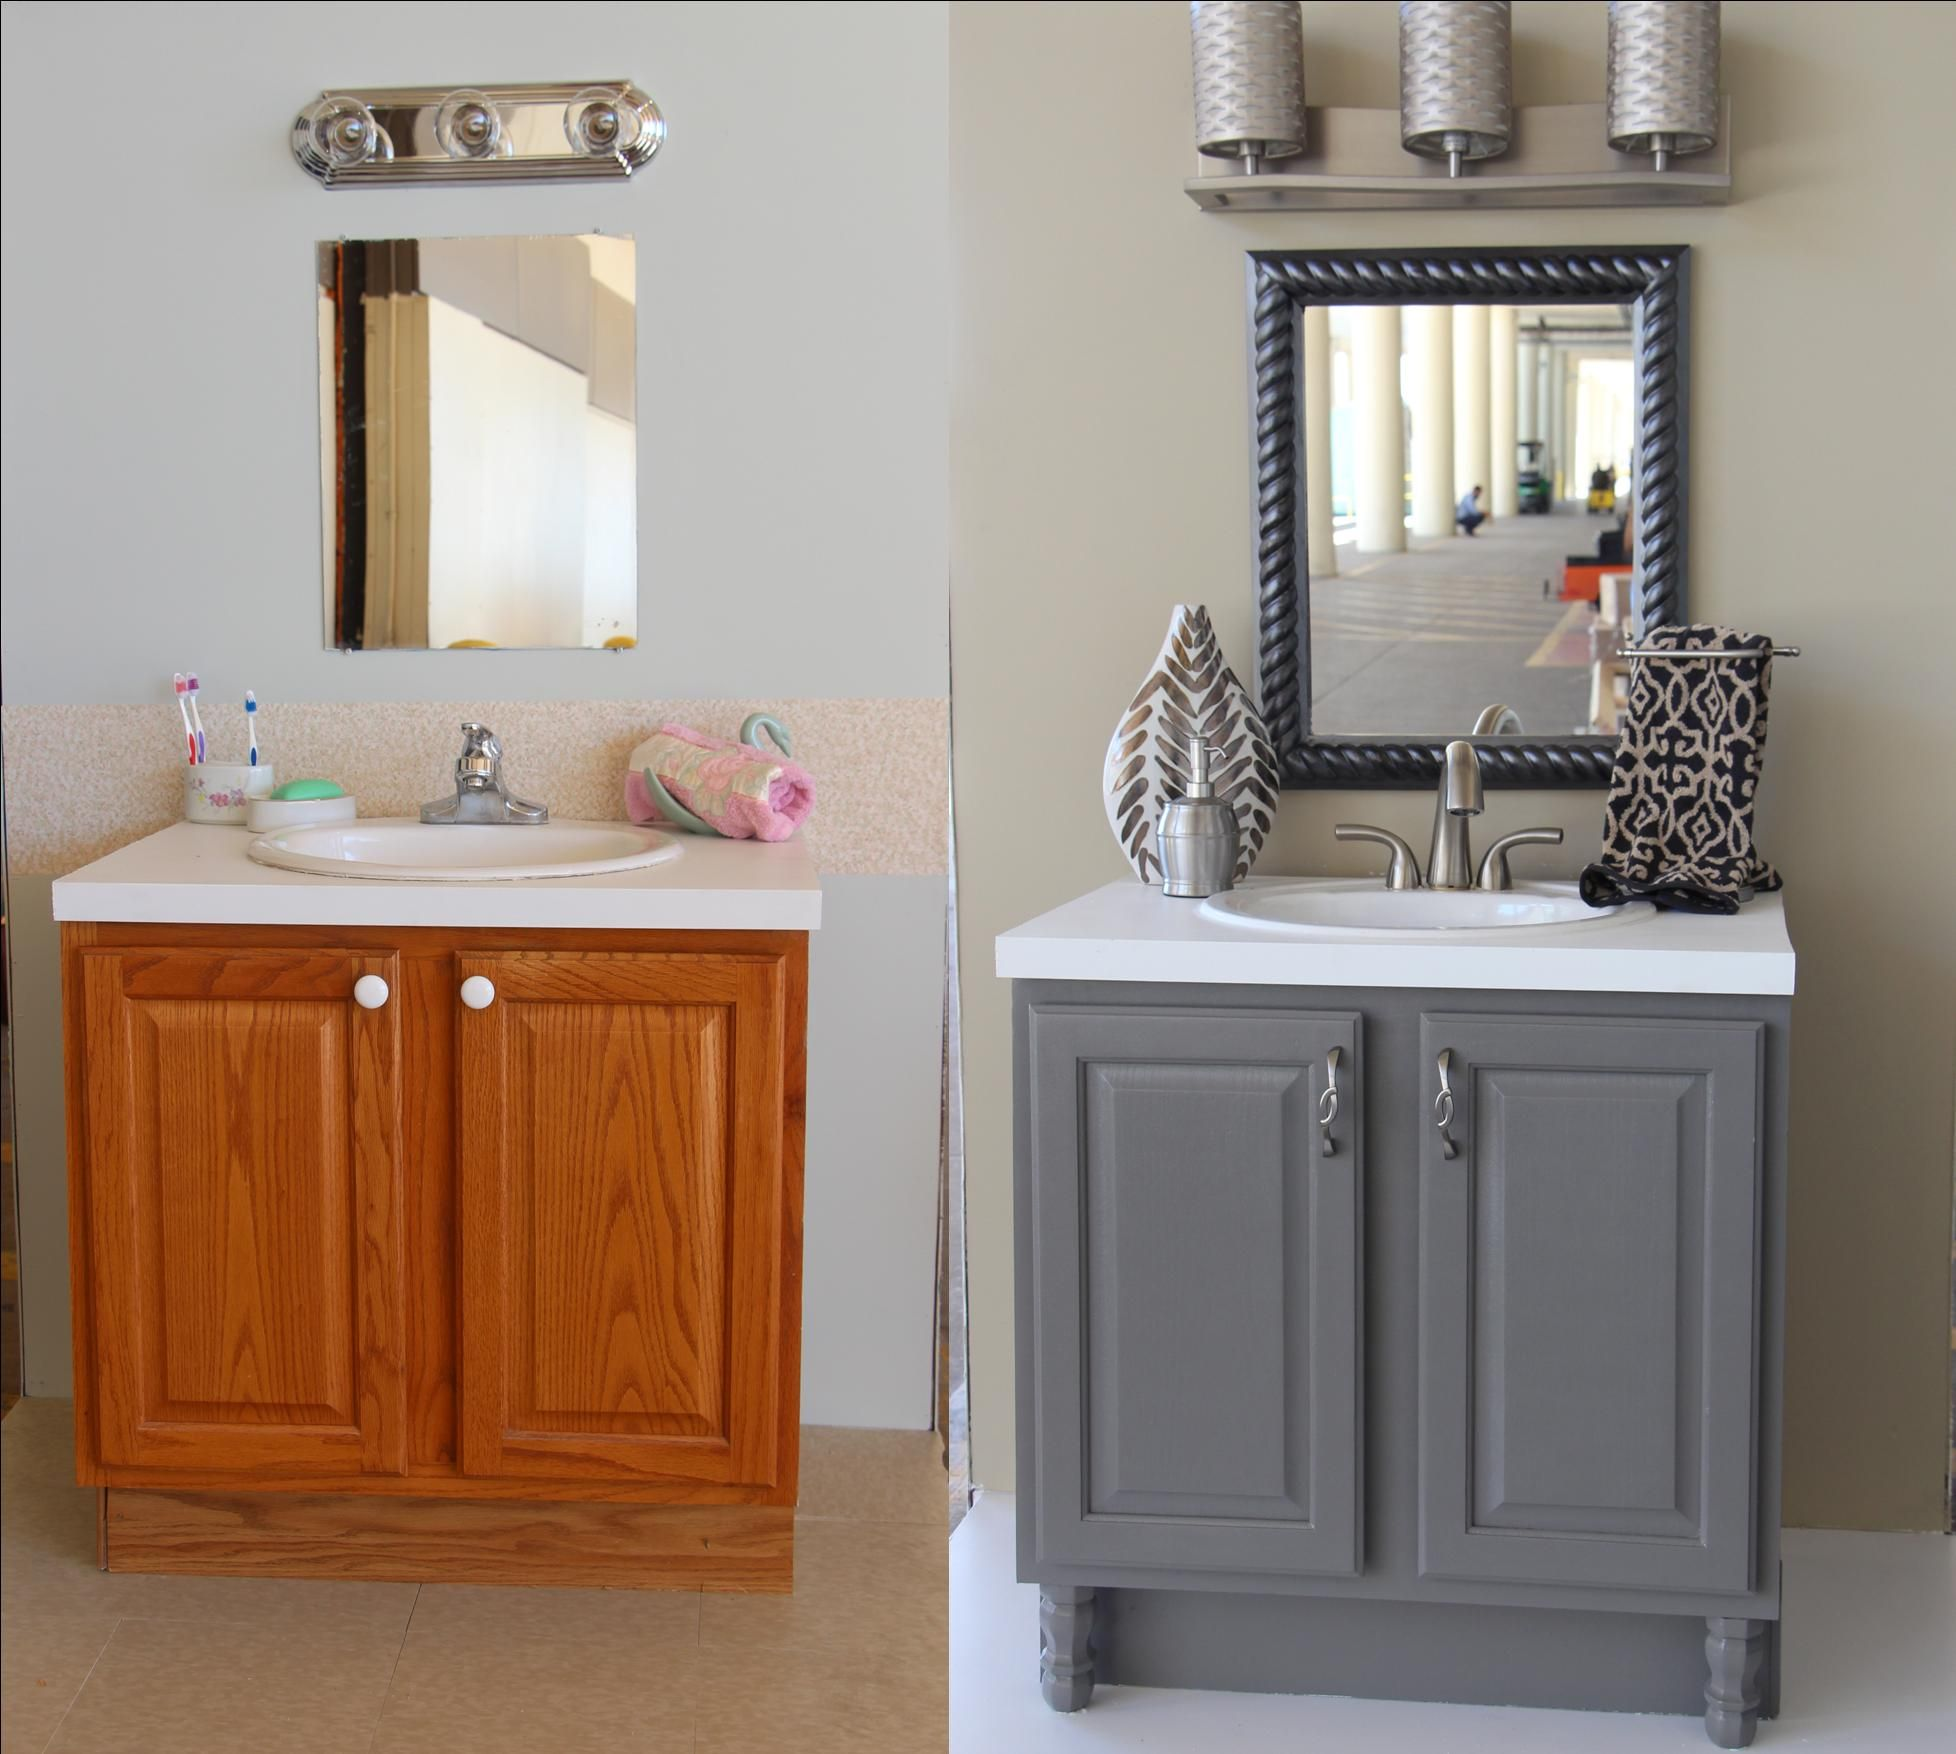 bathroom cabinet remodel. Trendsetter Bath Before And After With Accessories-upcycled Bathroom Ideas Cabinet Remodel T